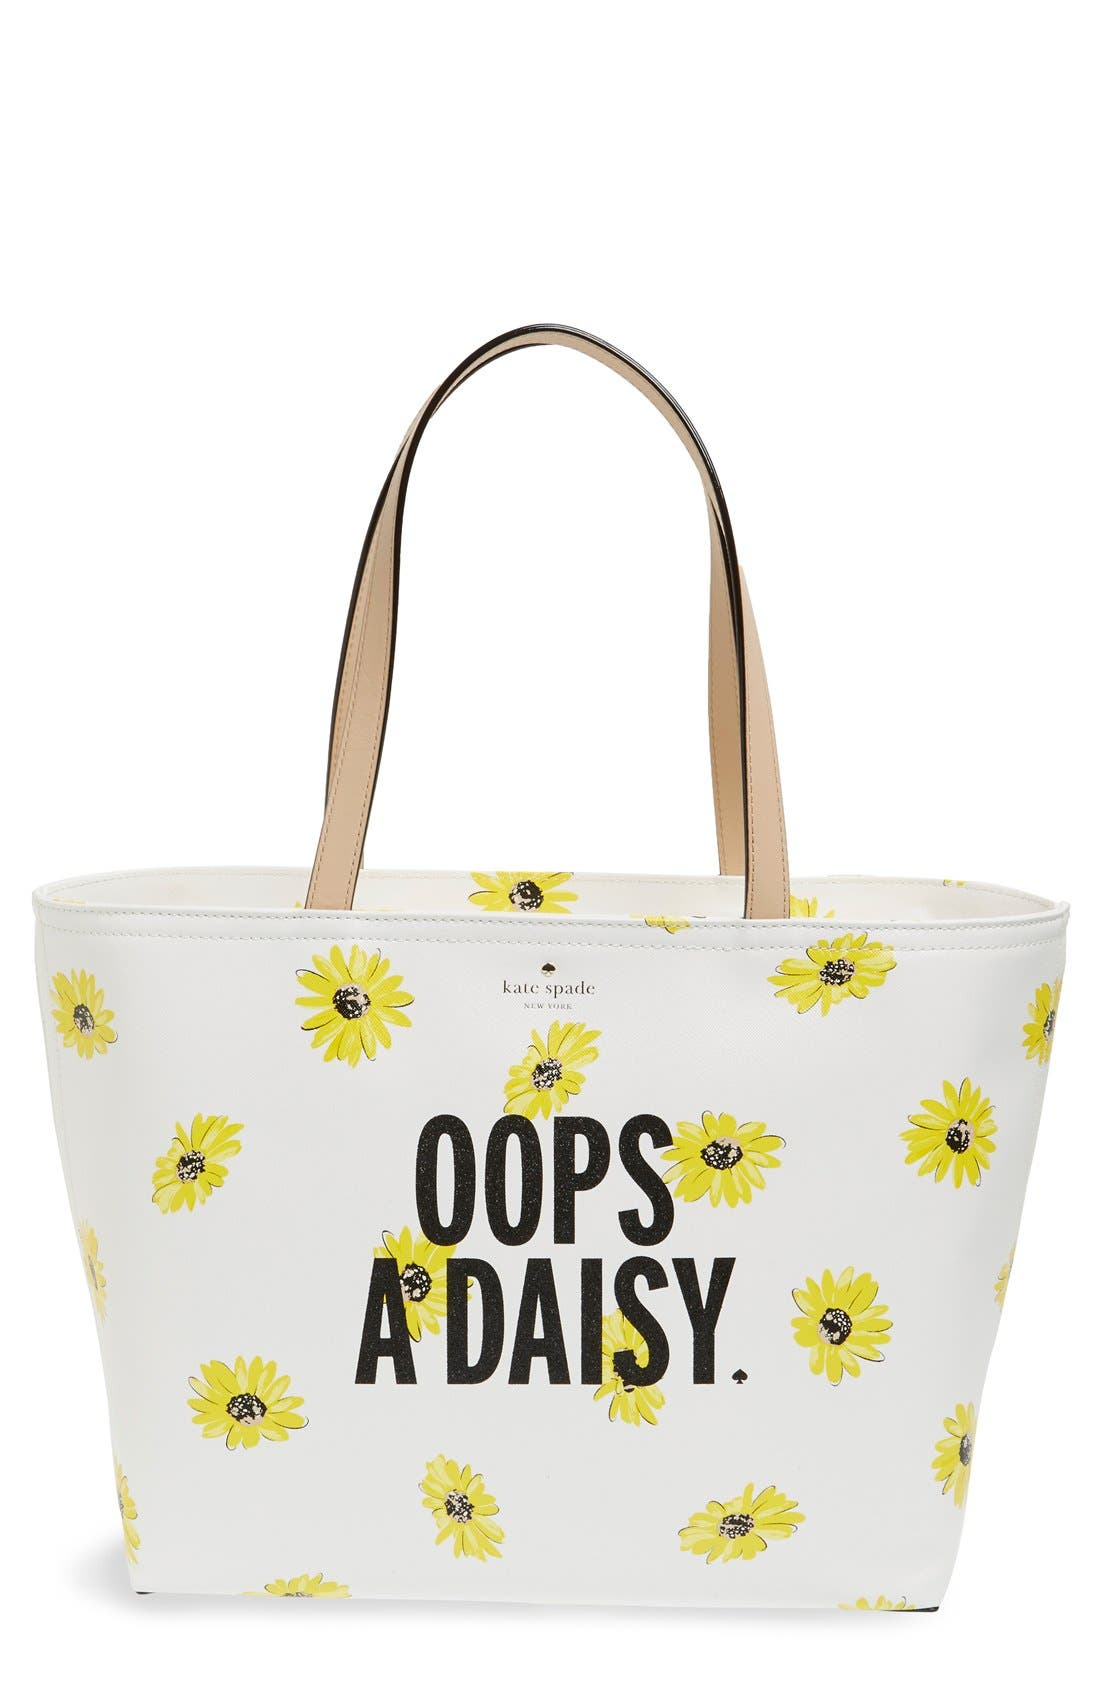 Alternate Image 1 Selected - kate spade new york 'oops-a-daisy - francis' tote